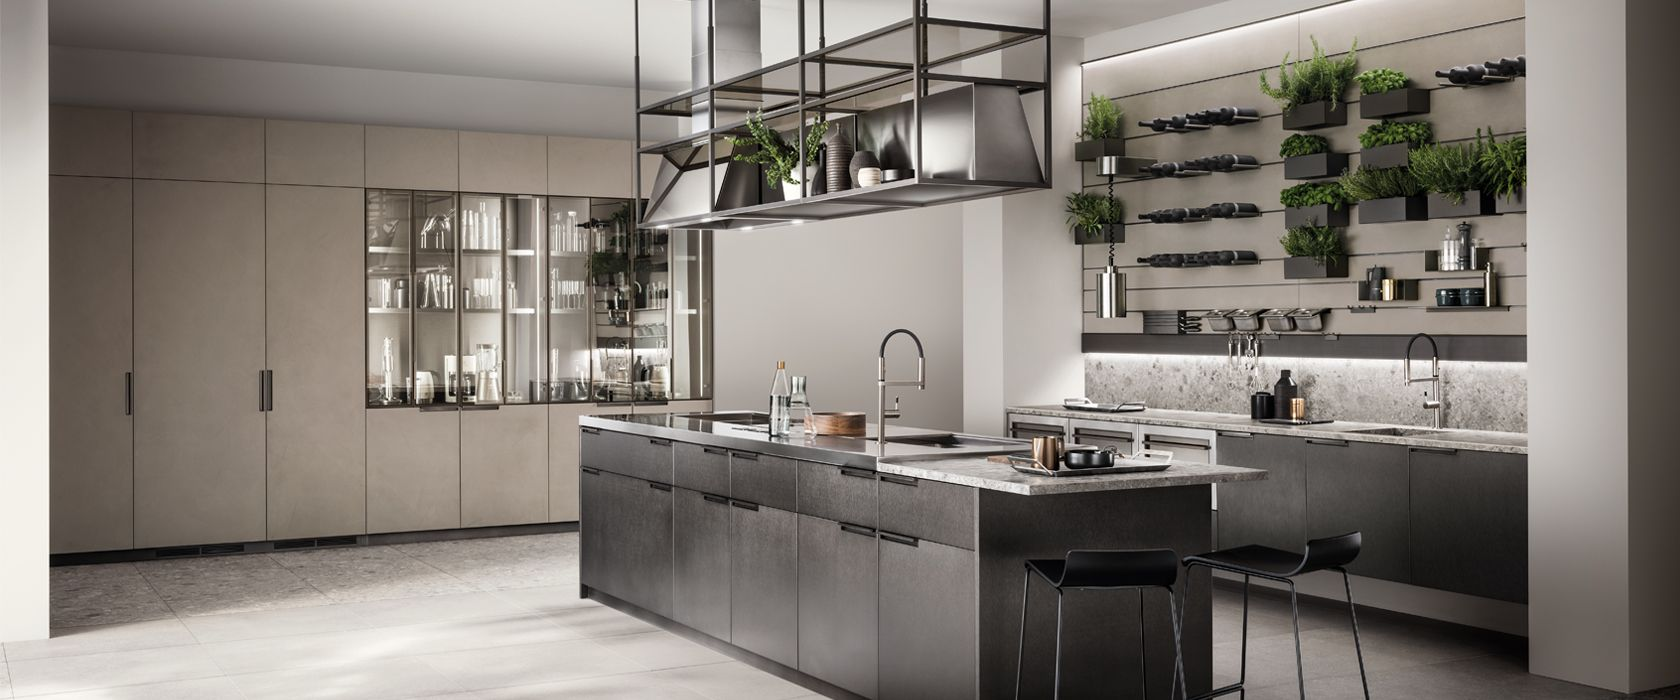 Mia Kitchen Cabinets By Carlo Cracco Scavolini Official Website